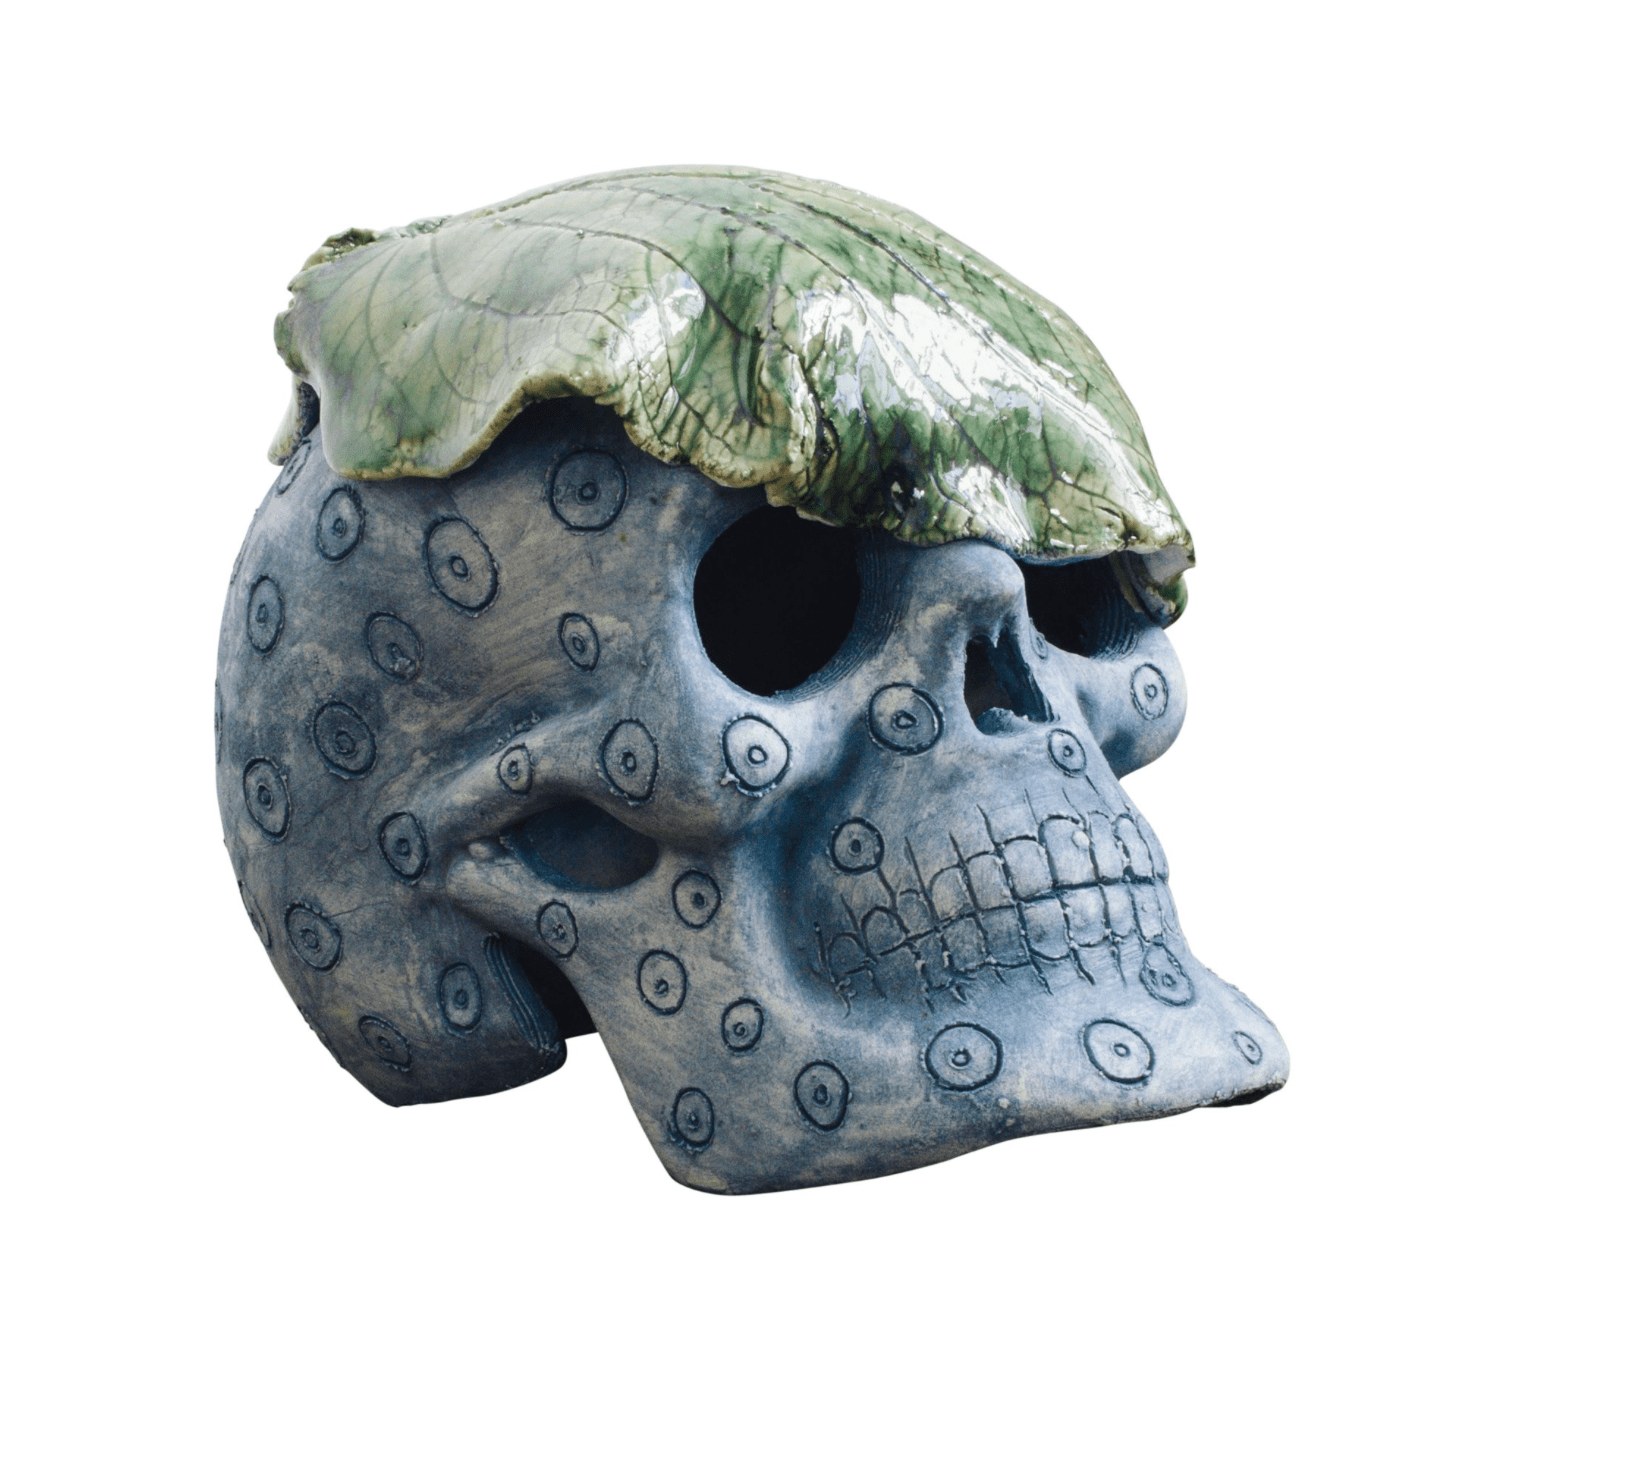 Antique blue and green ceramic skull with cabbage leaf